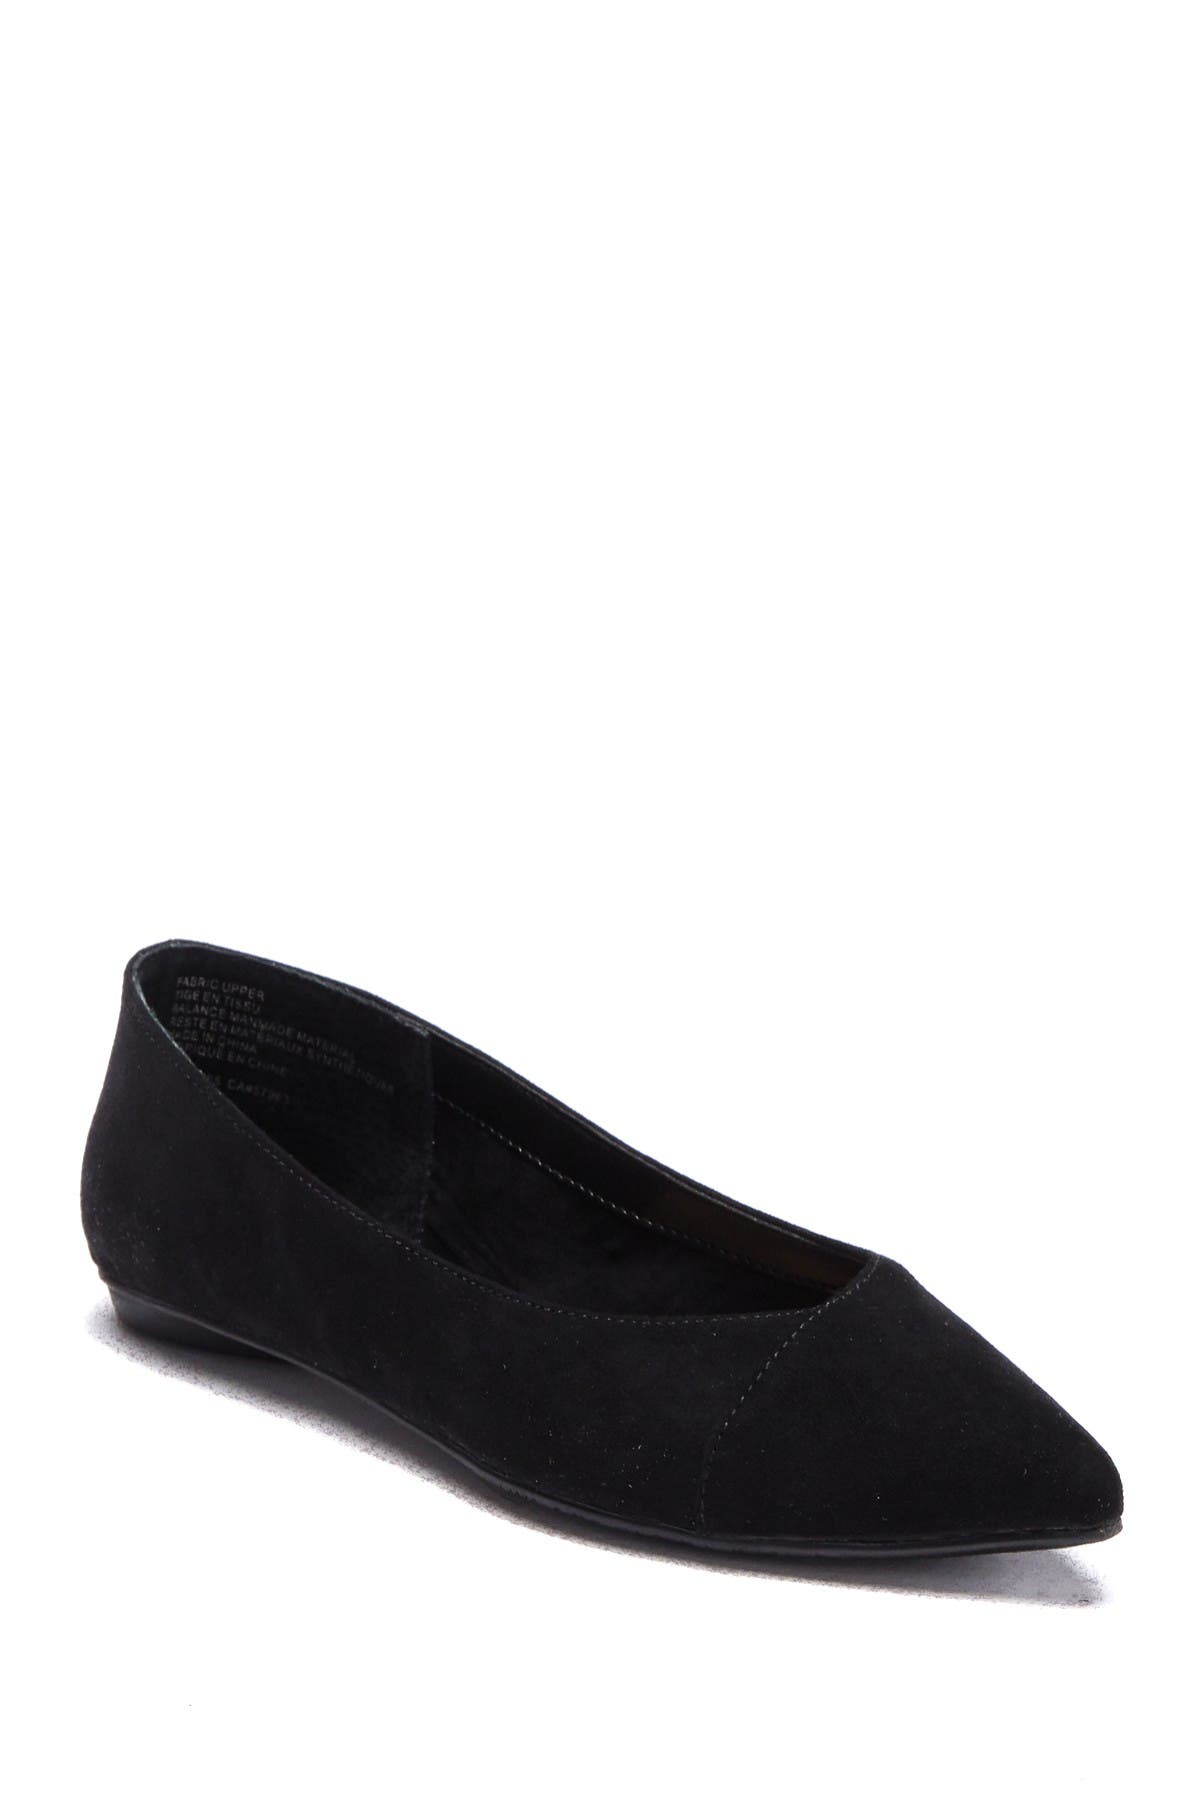 Image of Abound Sydnee Pointed Toe Flat